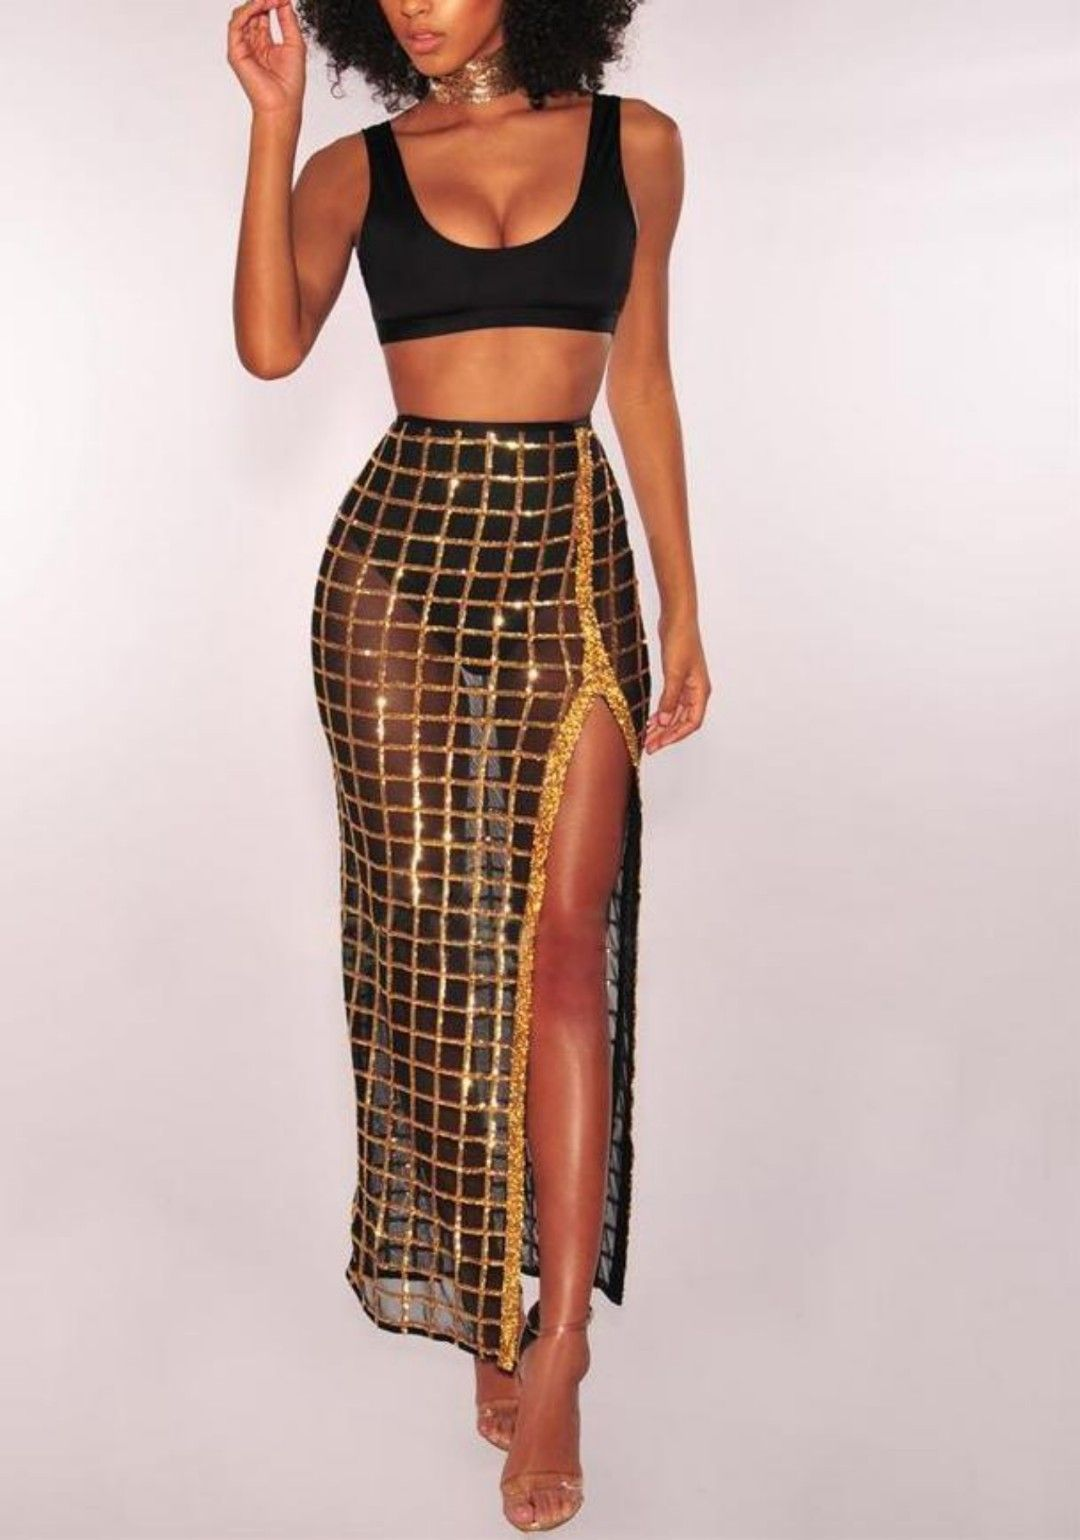 2 Piece Crop Top And High Split Glitter Skirt Dress With Images